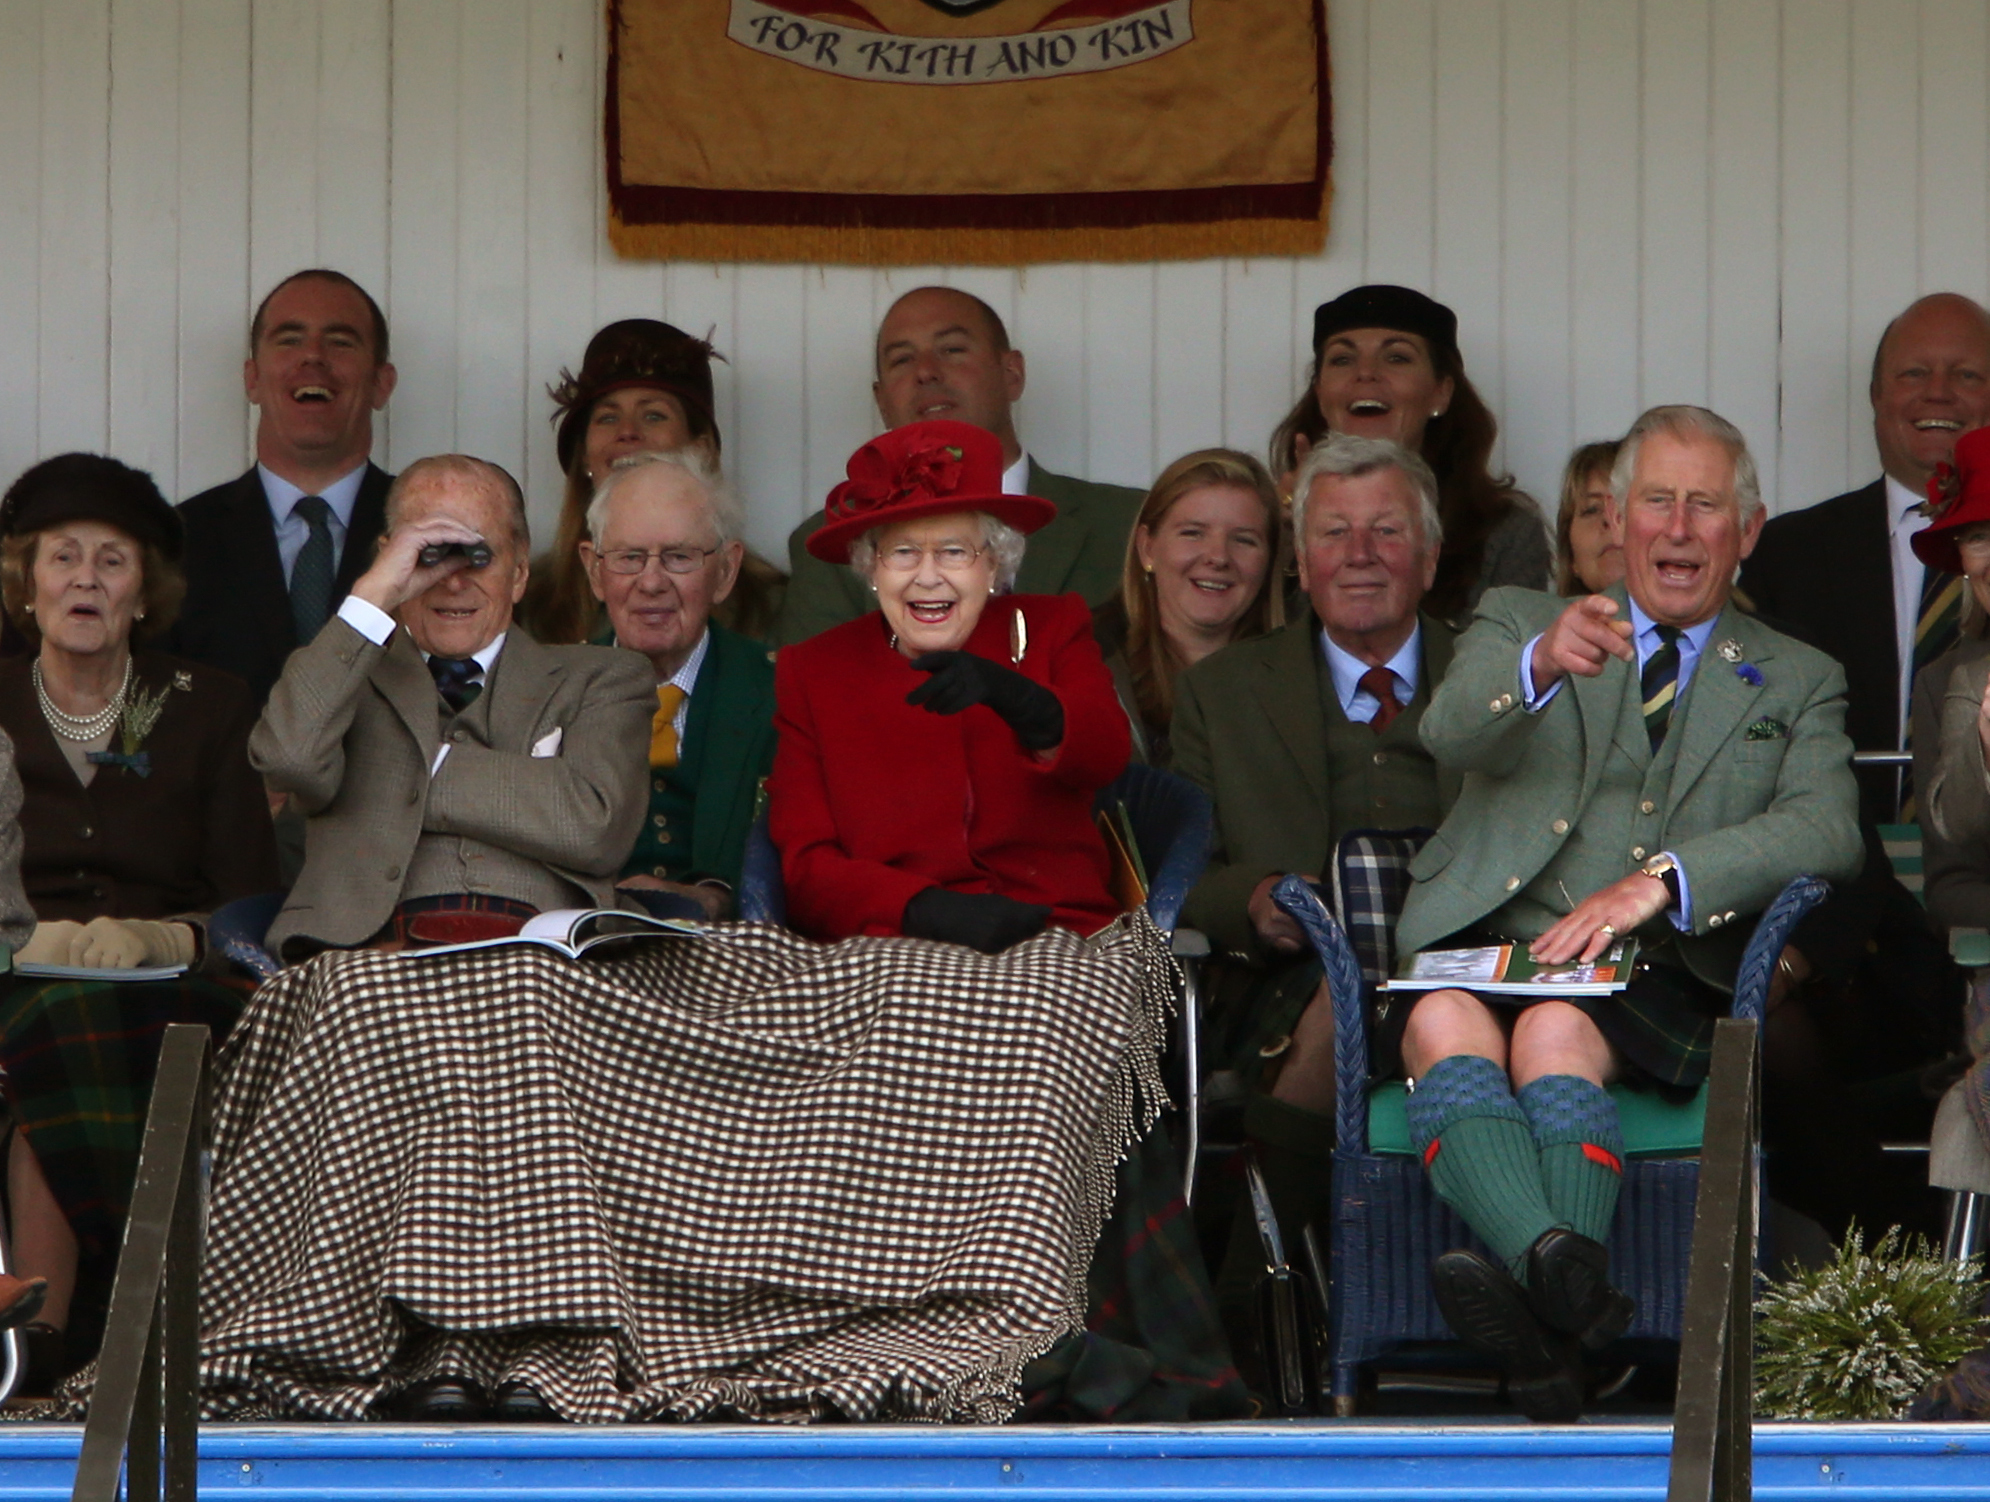 The Queen enjoys the action at Braemar Royal Highland Gathering last year.